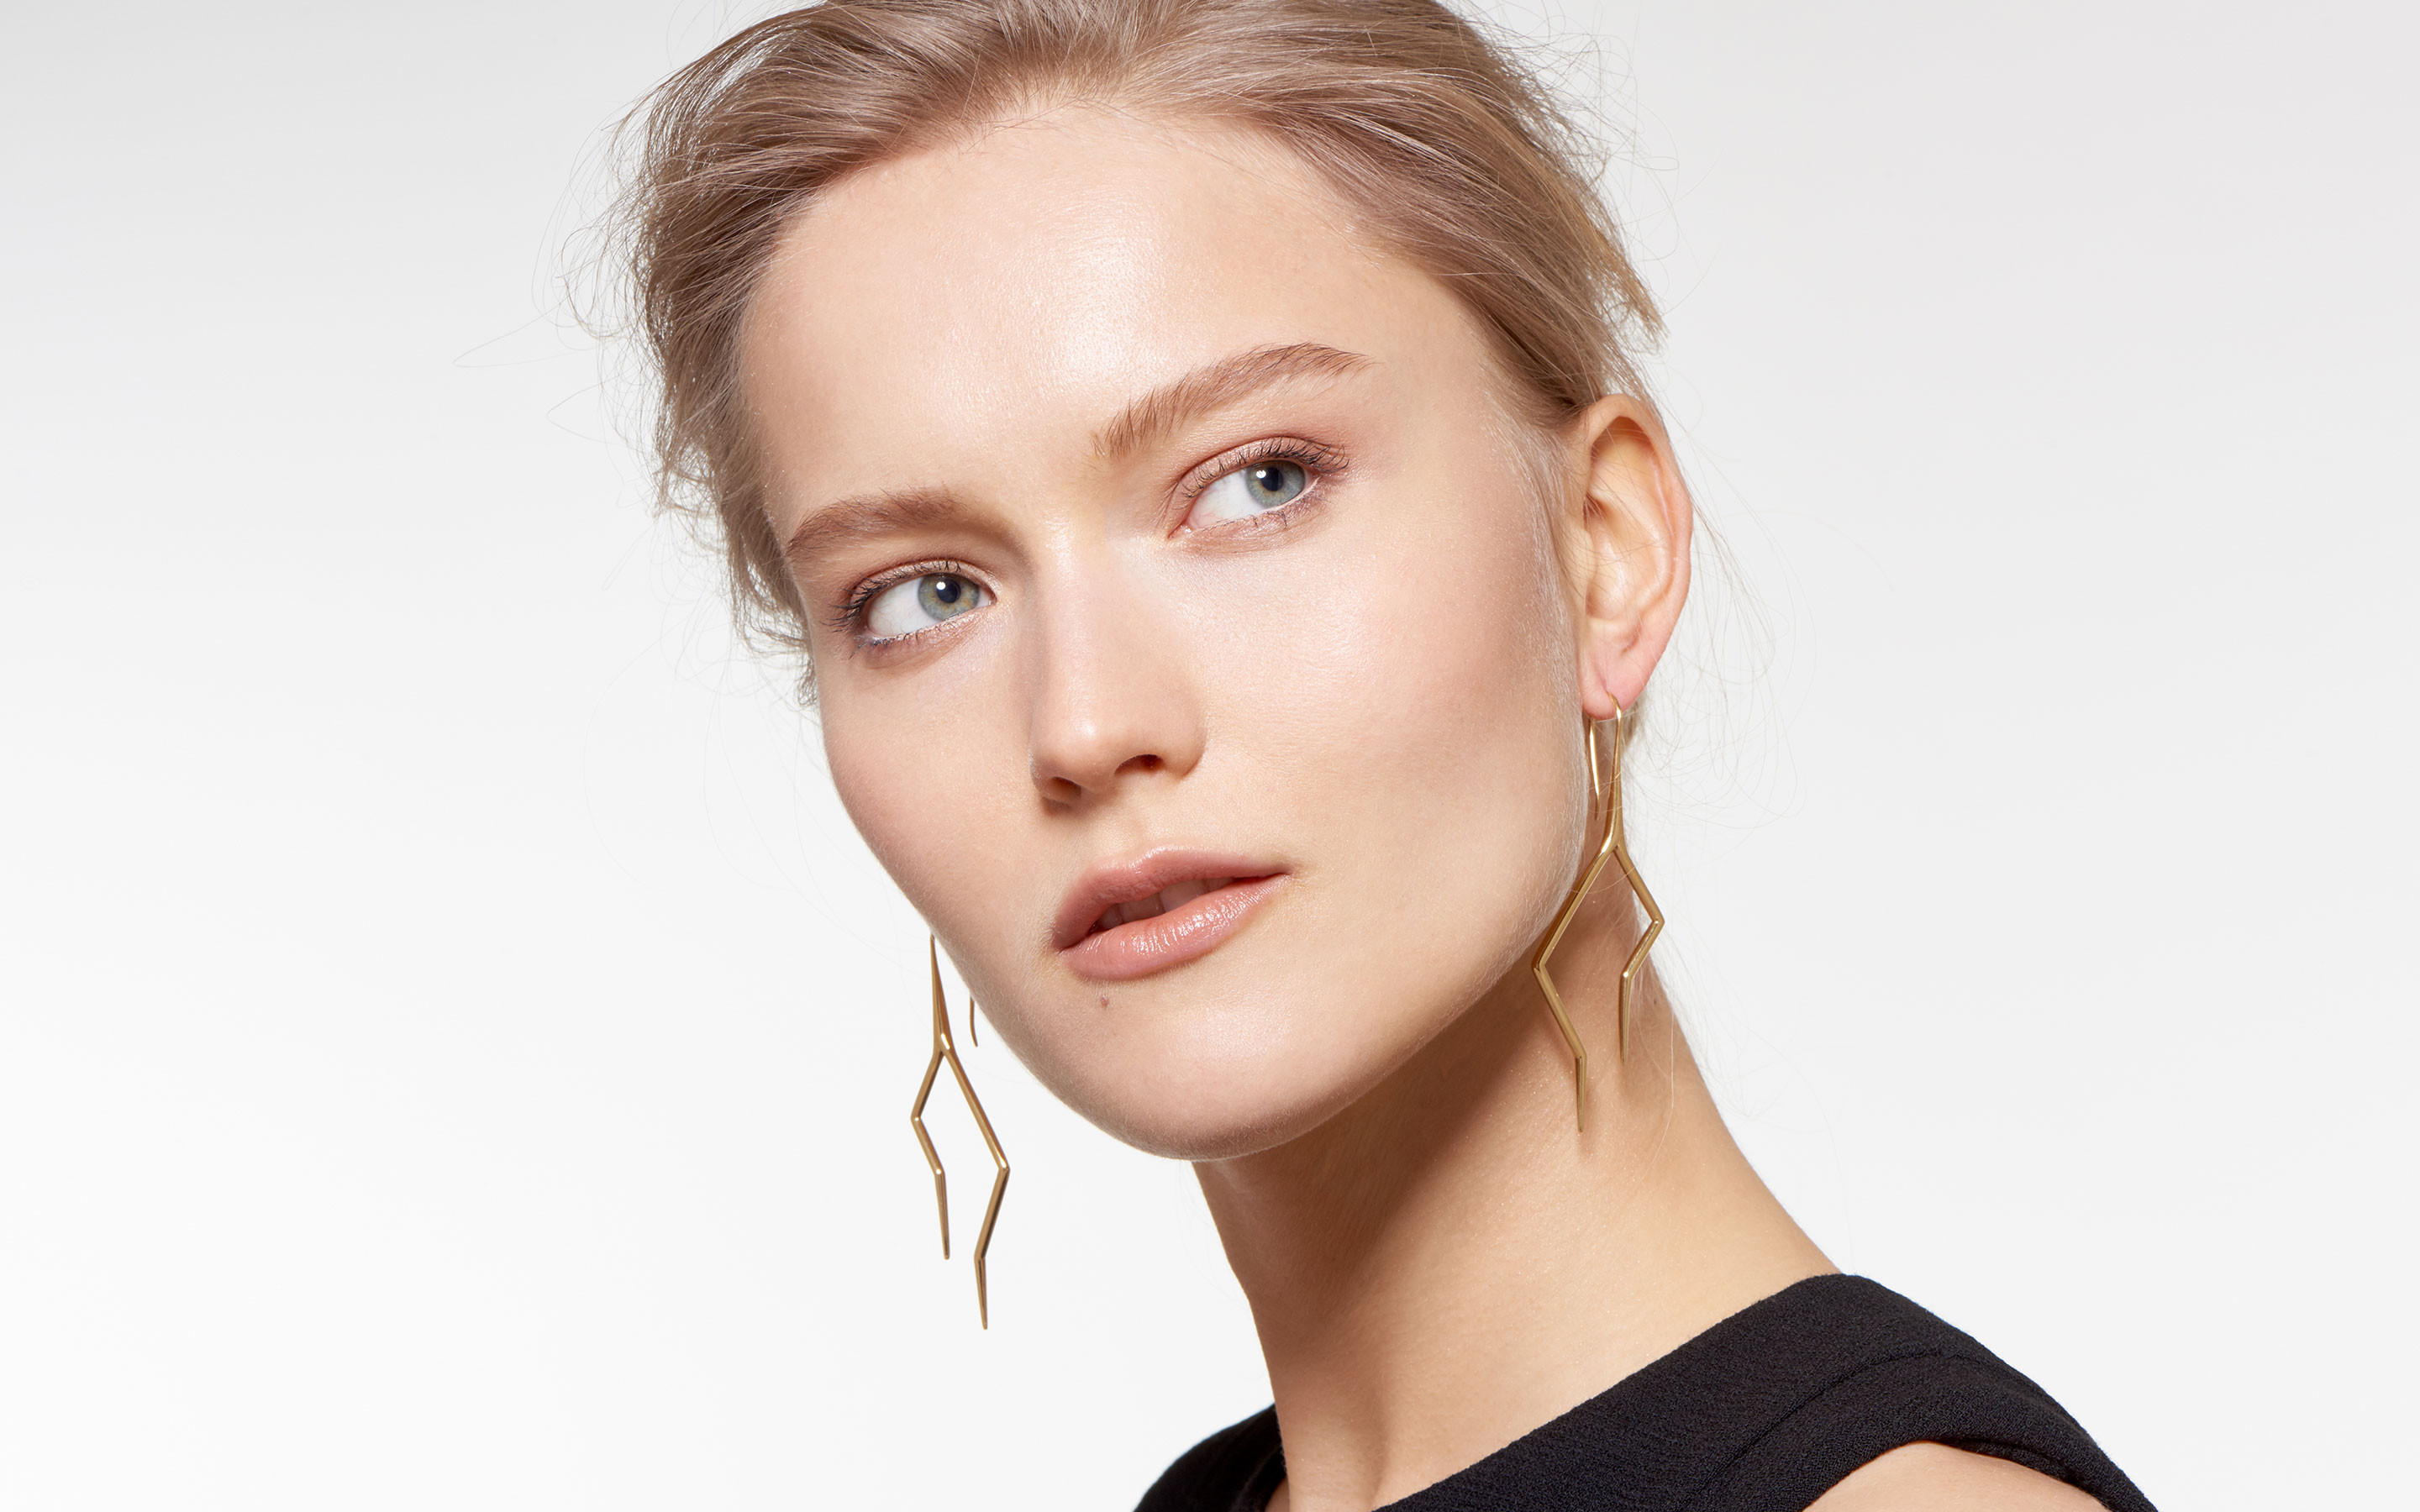 striking model adorned with 22 karat gold hook earrings in firebolt design